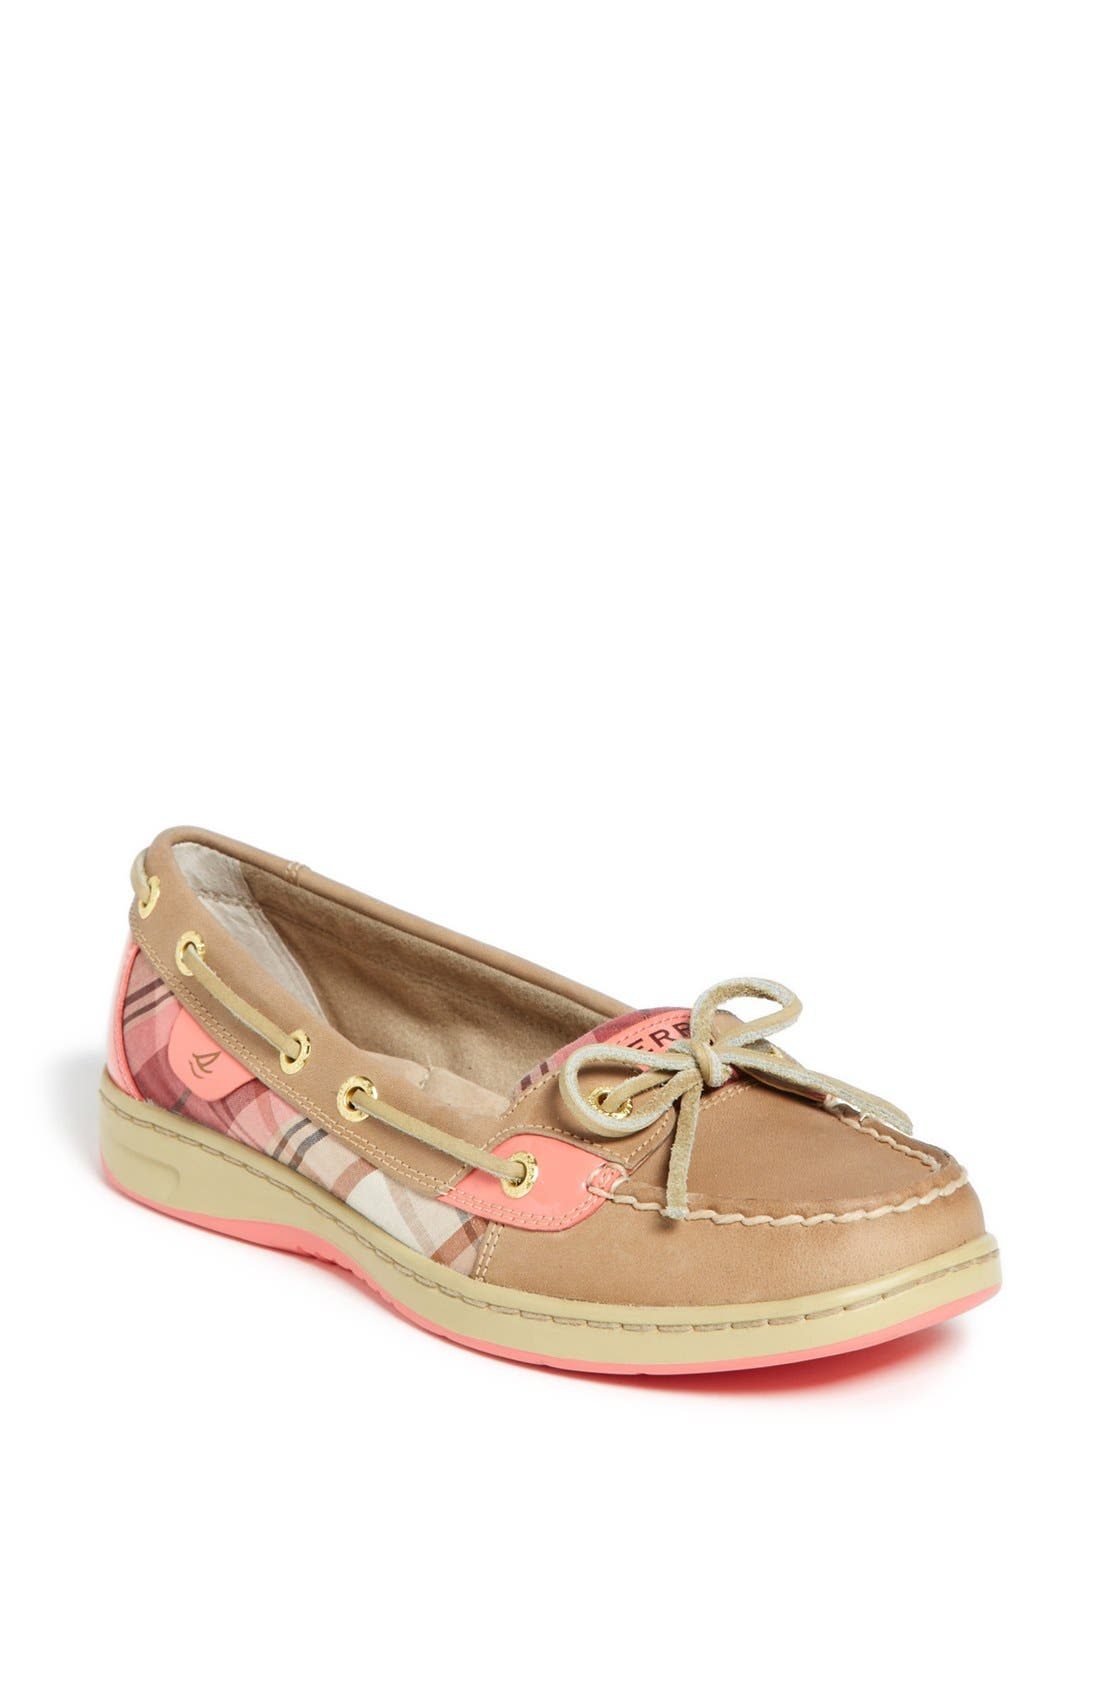 Alternate Image 1 Selected - Sperry 'Angelfish' Boat Shoe (Women)